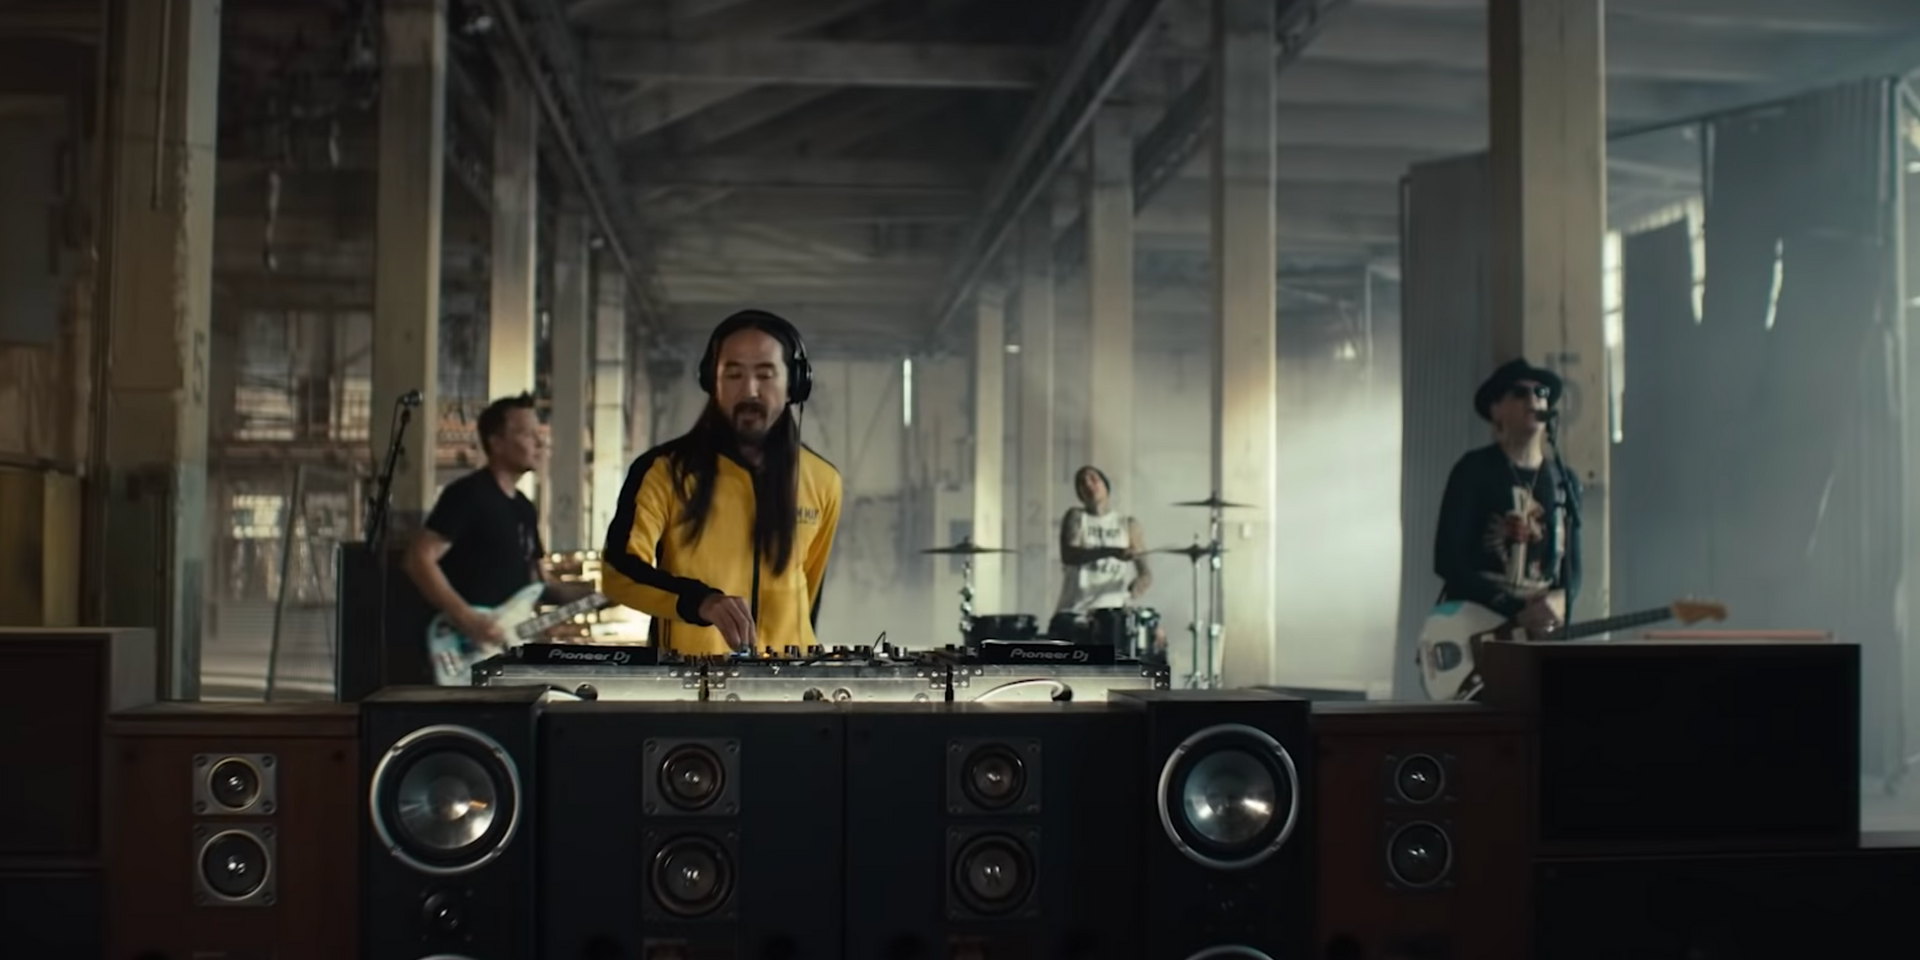 Destruction is central in Steve Aoki and Blink-182's new music video for 'Why Are We So Broken' – watch